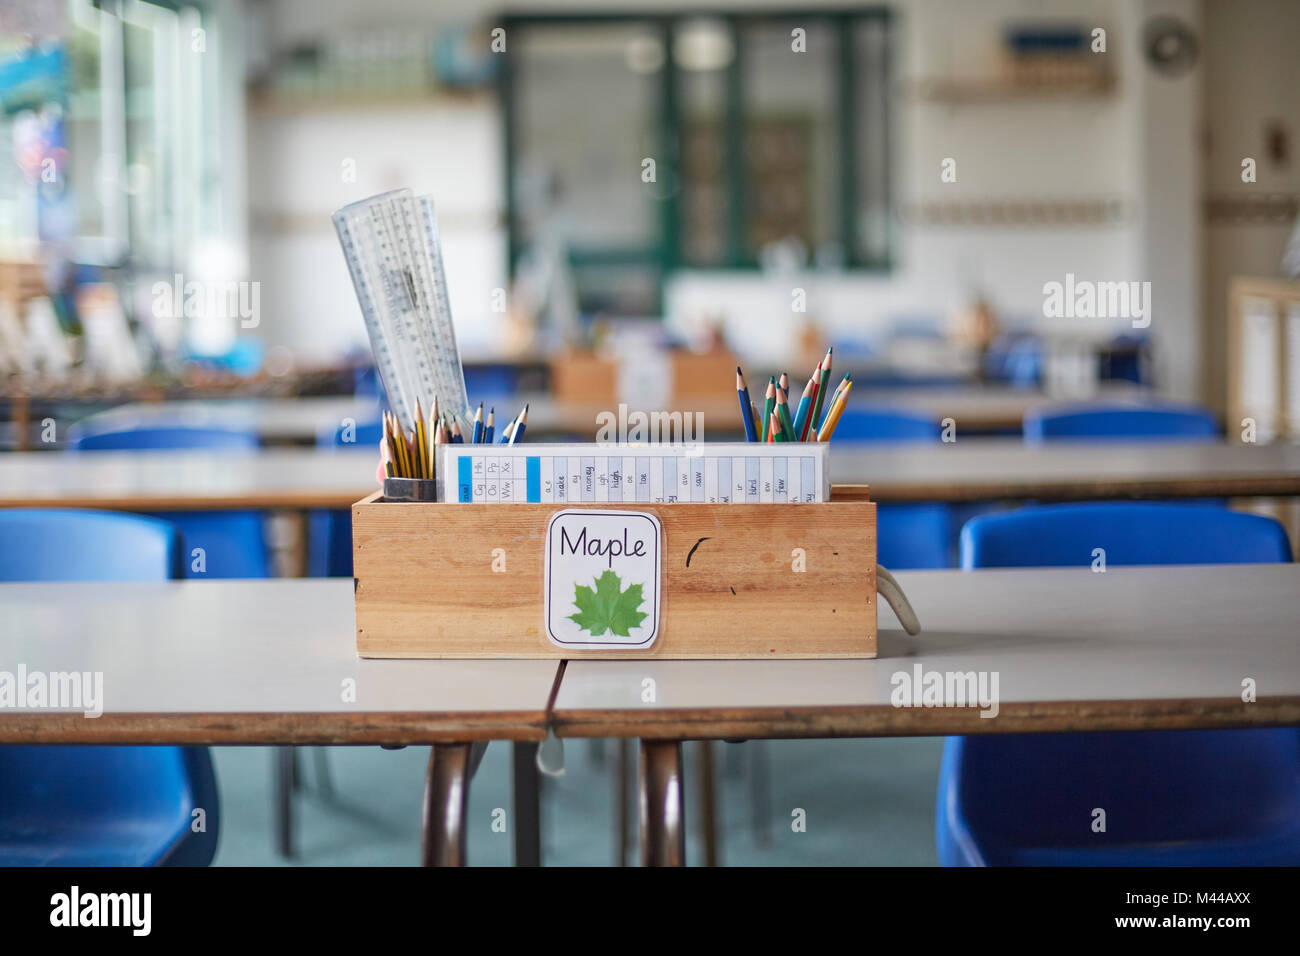 Classroom desk with wooden box full of pencils and rulers in primary school classroom - Stock Image